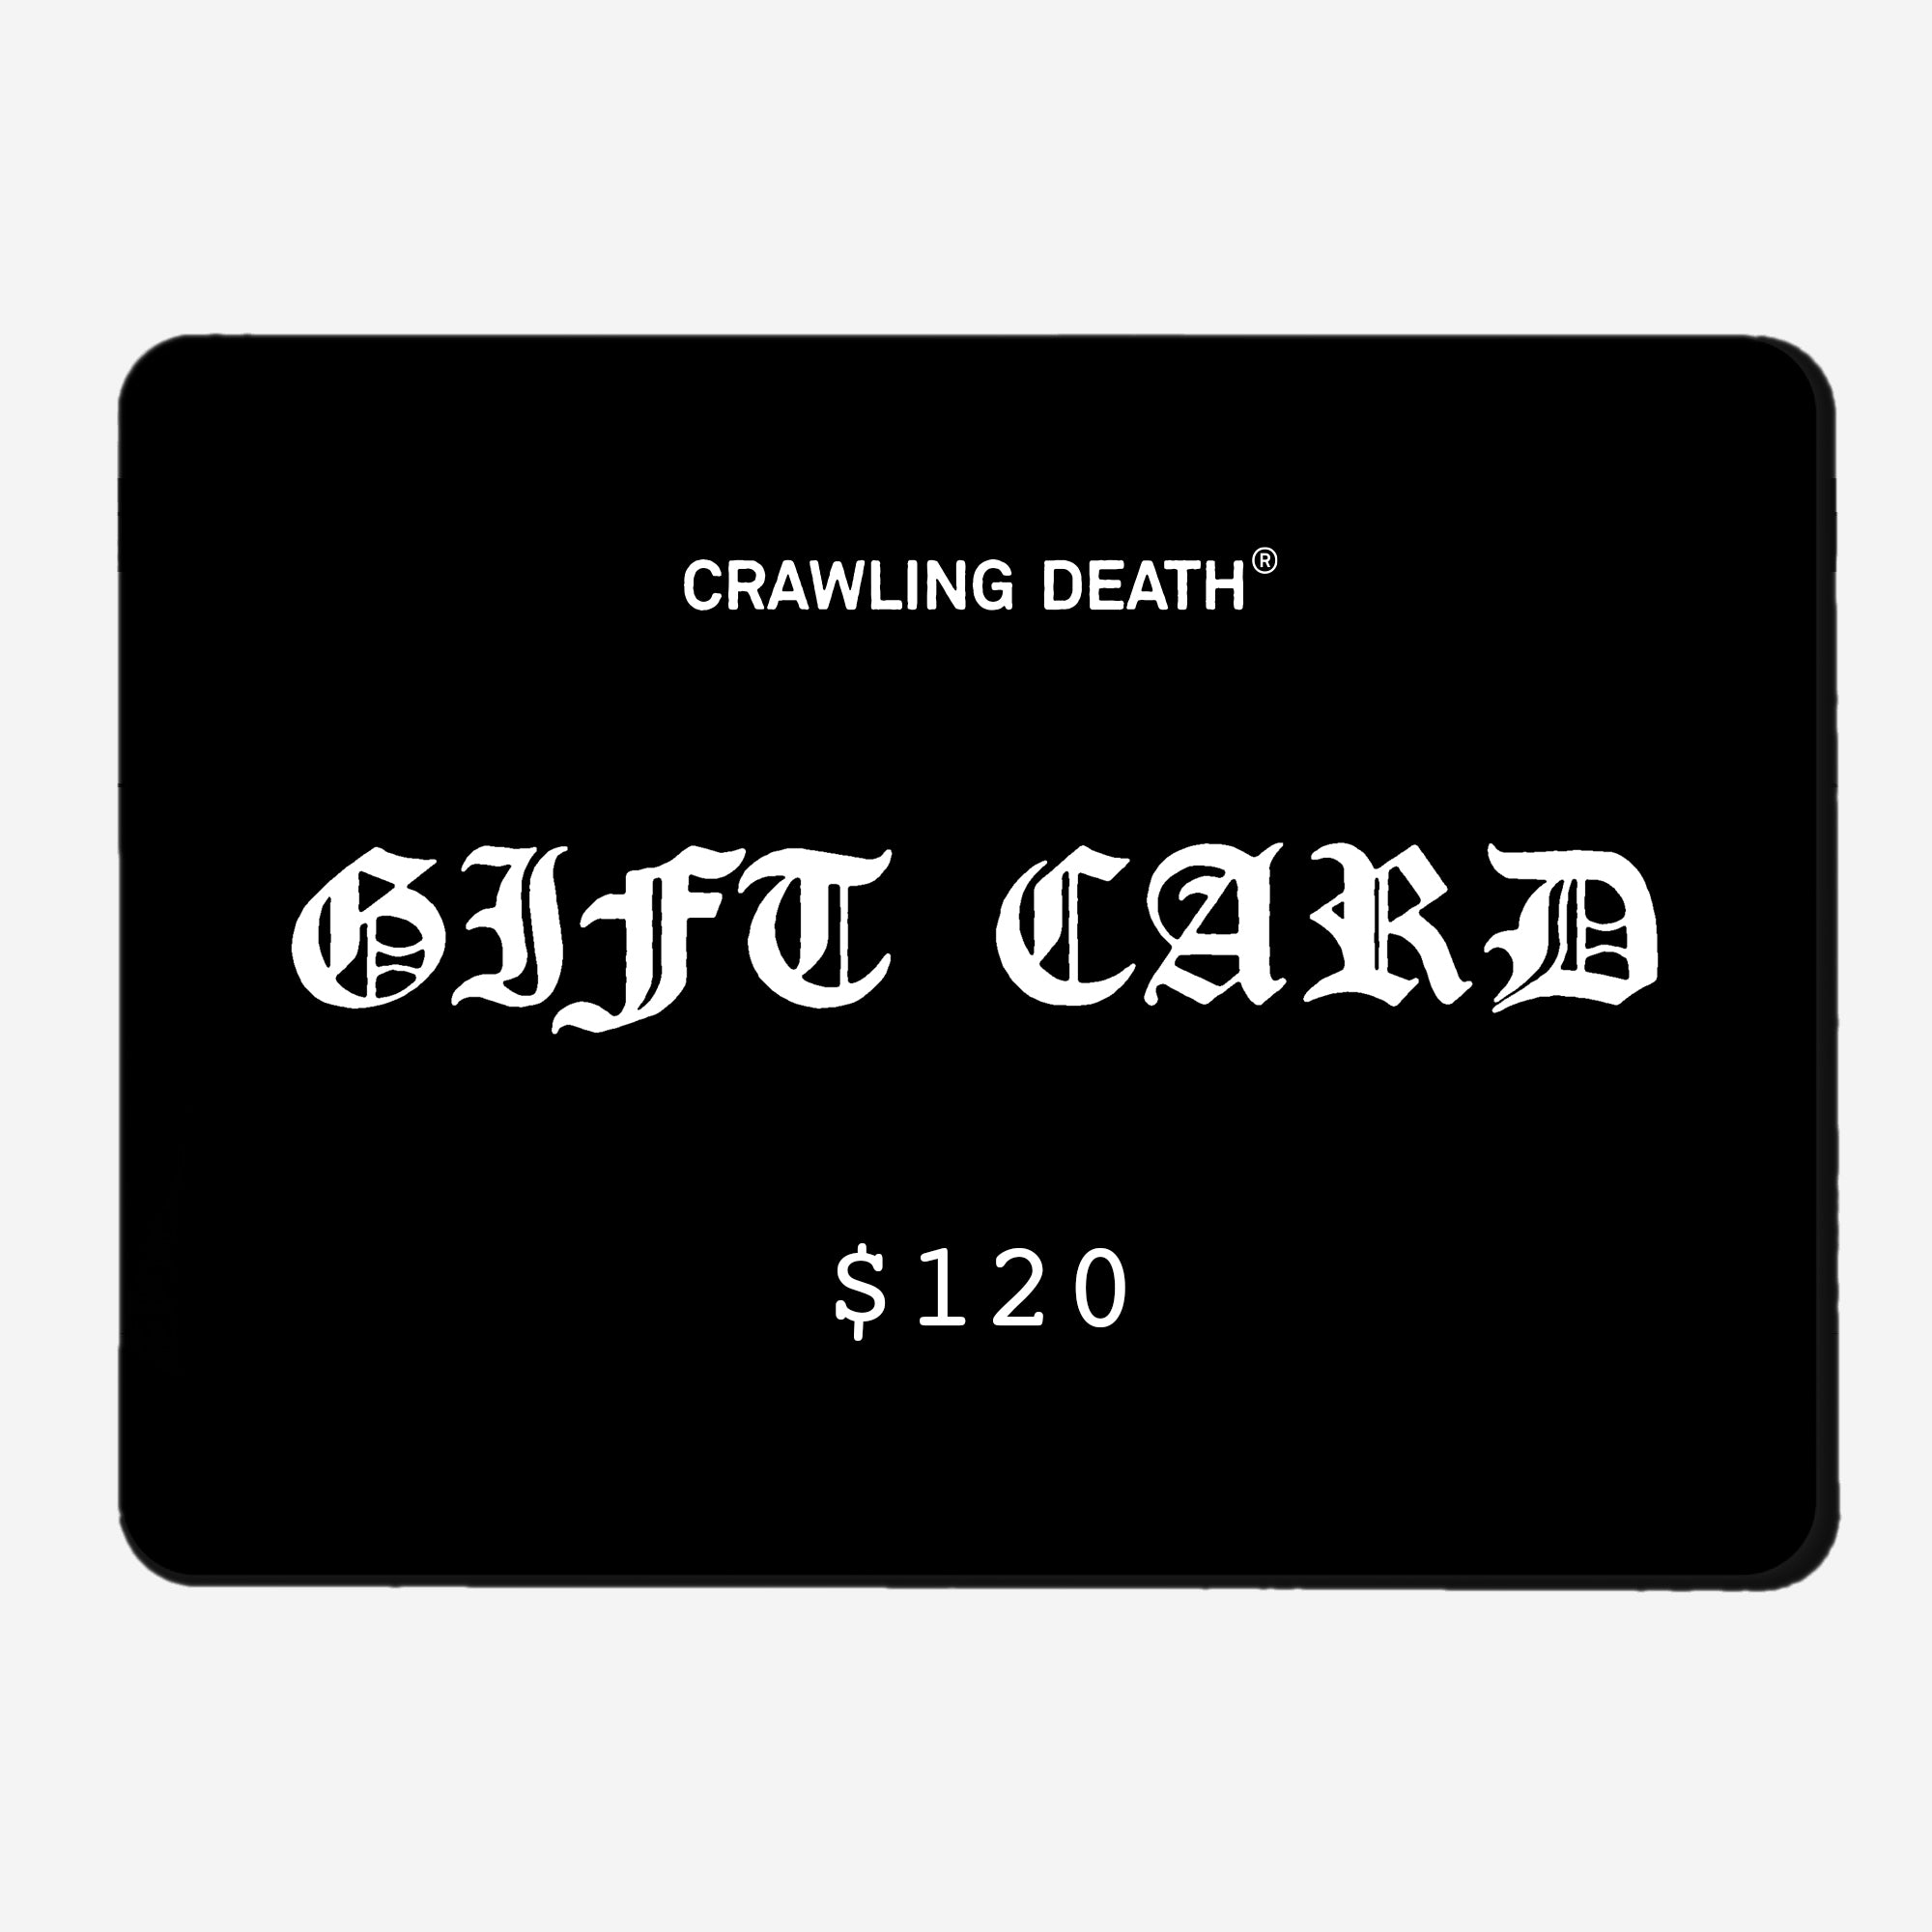 Email Gift Card - $120